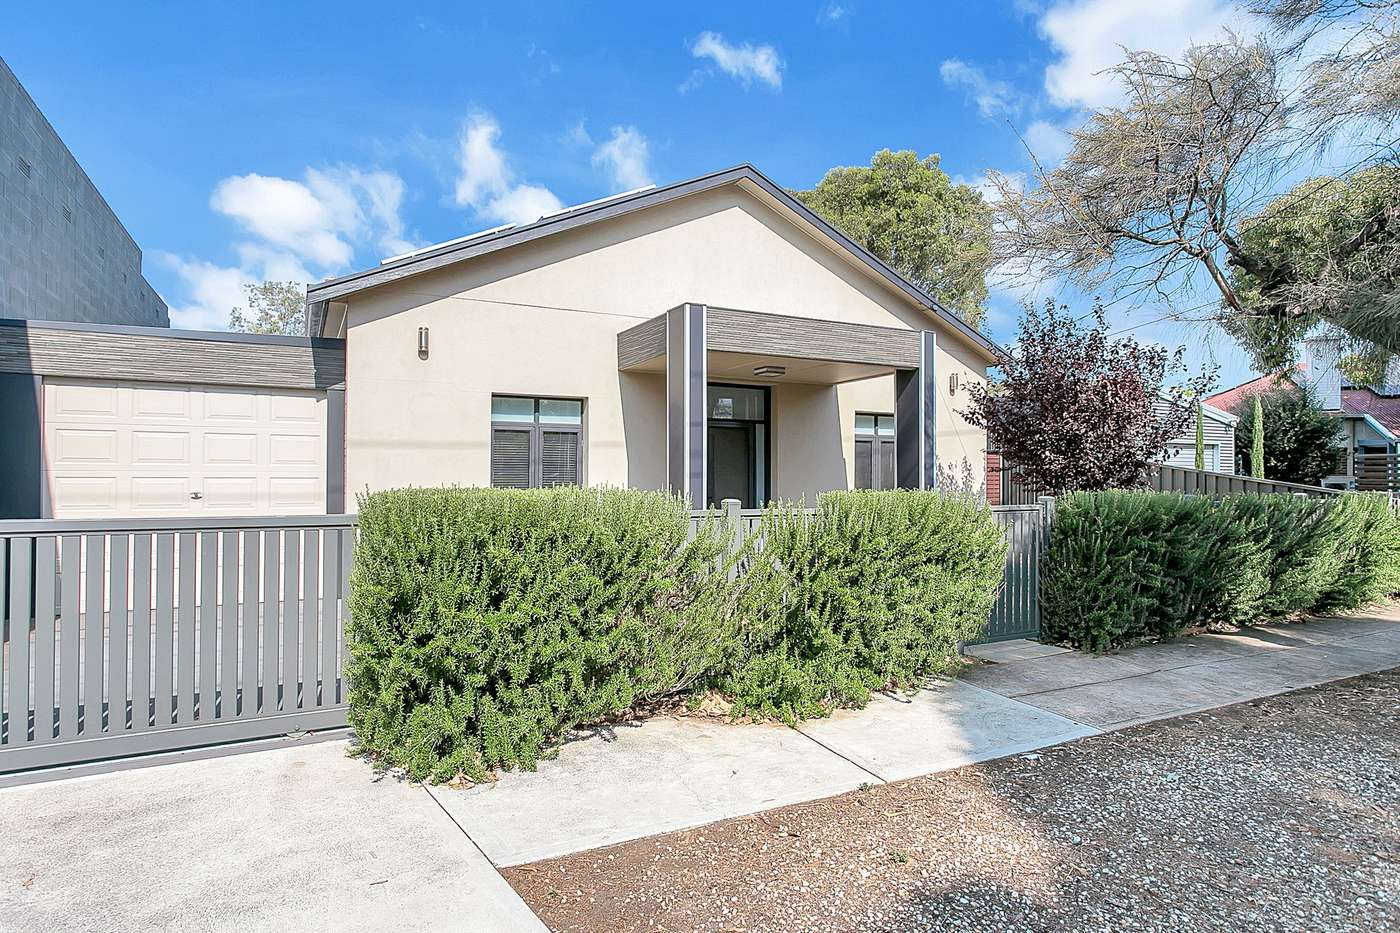 Main view of Homely house listing, 21 Milner Road, Hilton, SA 5033